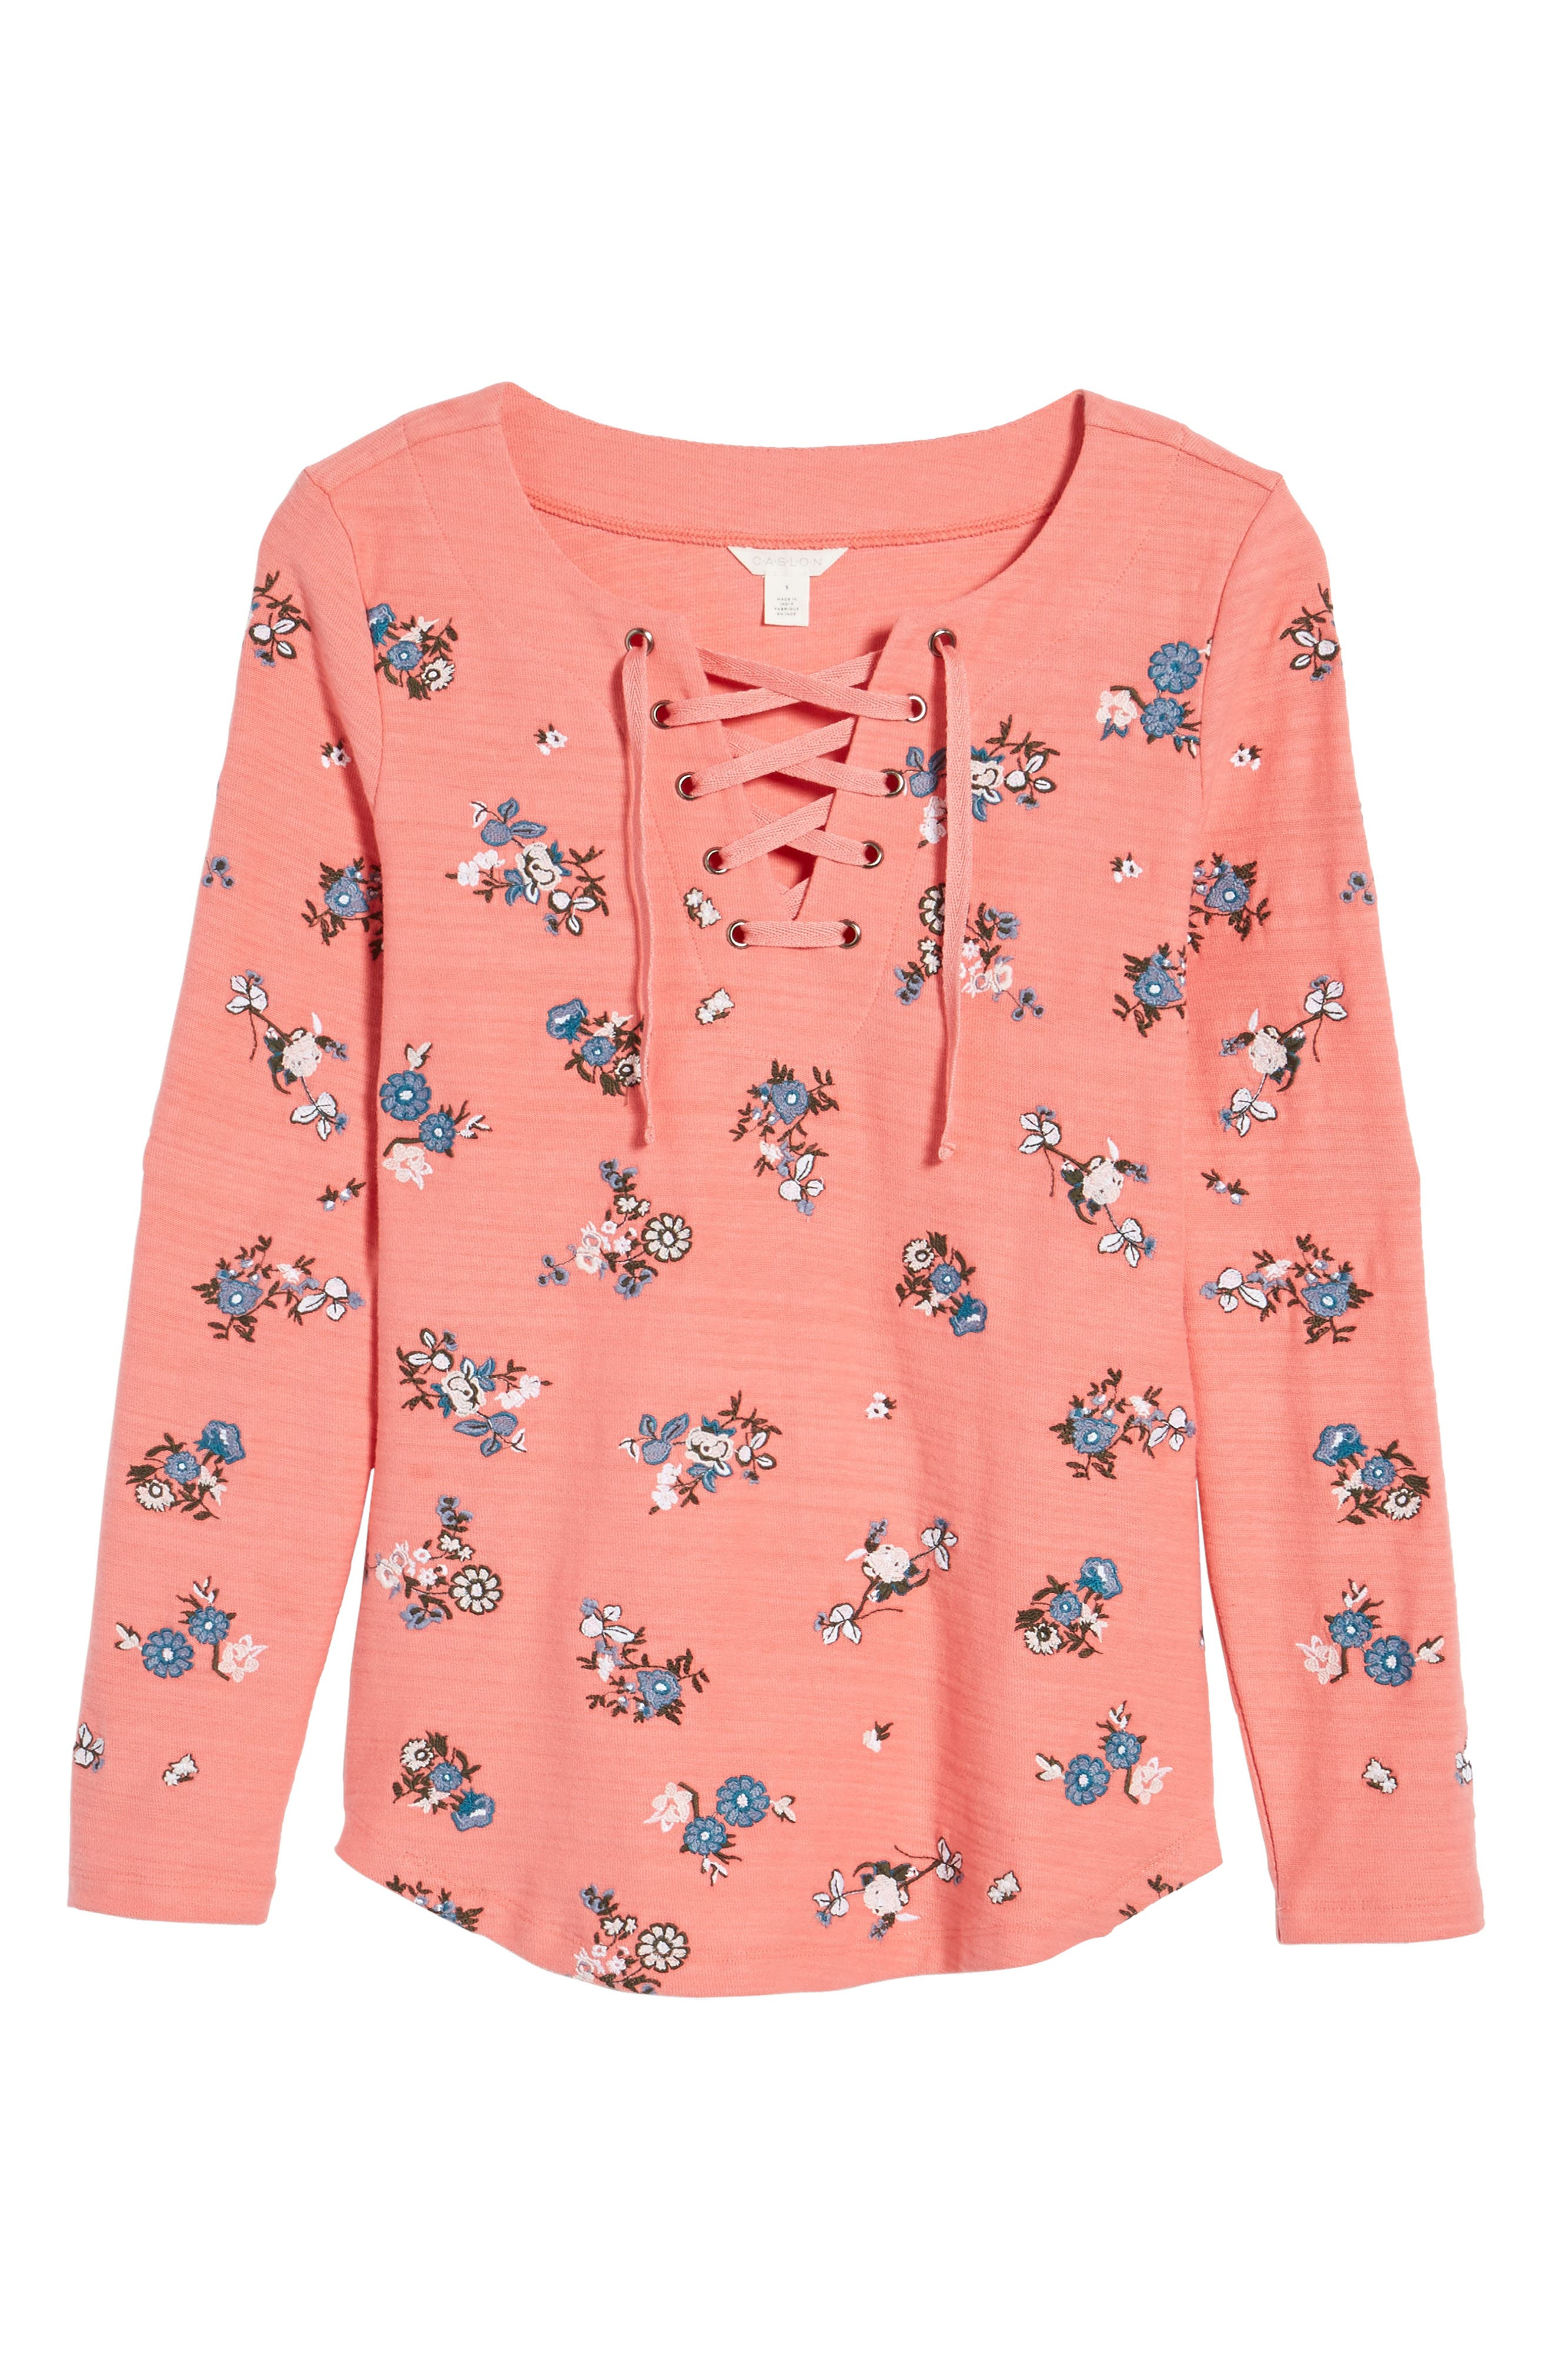 Lace-Up Neck Floral Embroidered Sweatshirt,                             Alternate thumbnail 12, color,